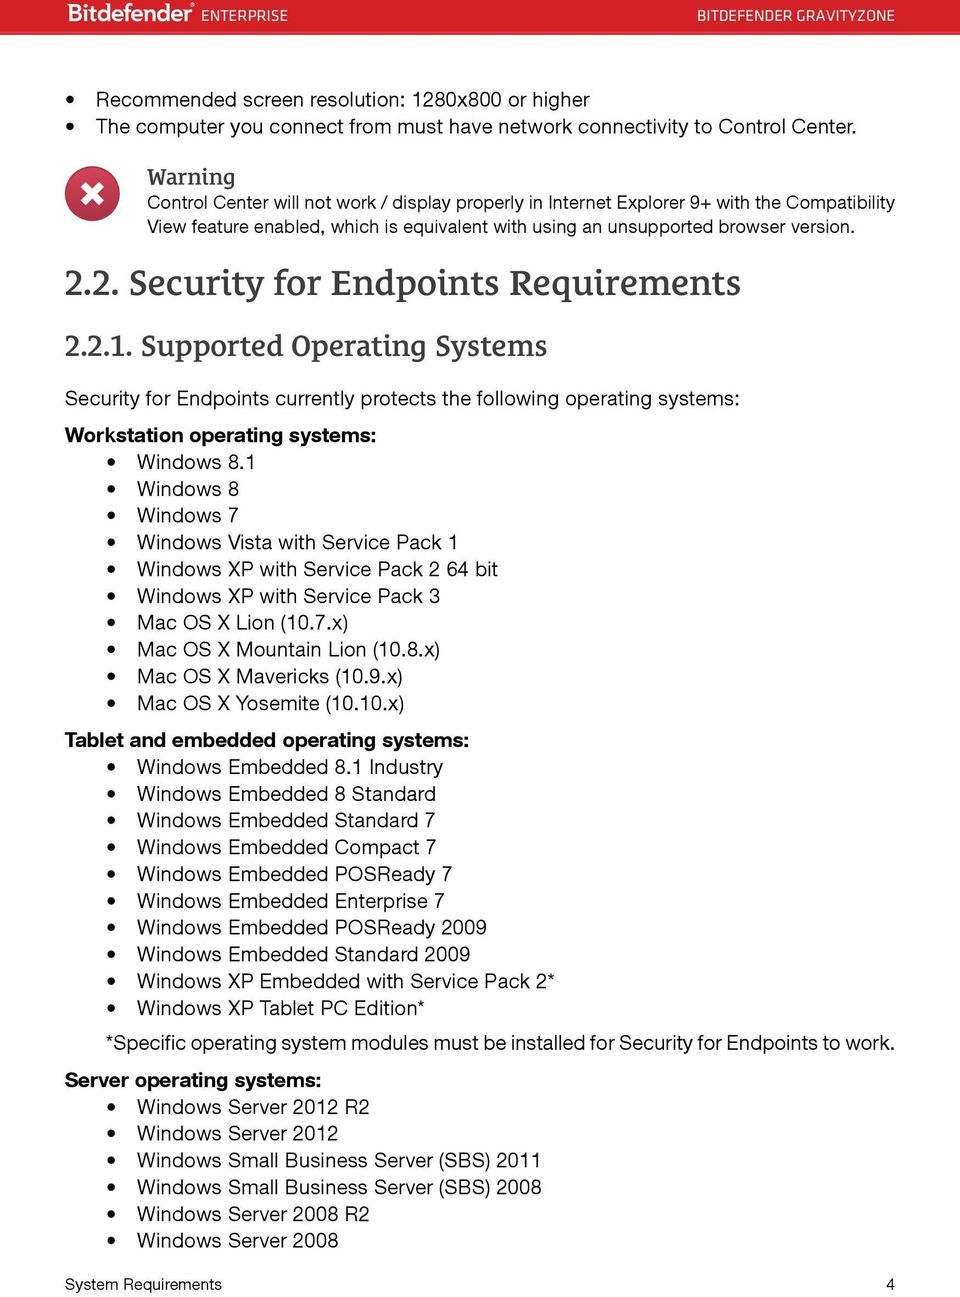 2. Security for Endpoints Requirements 2.2.1. Supported Operating Systems Security for Endpoints currently protects the following operating systems: Workstation operating systems: Windows 8.